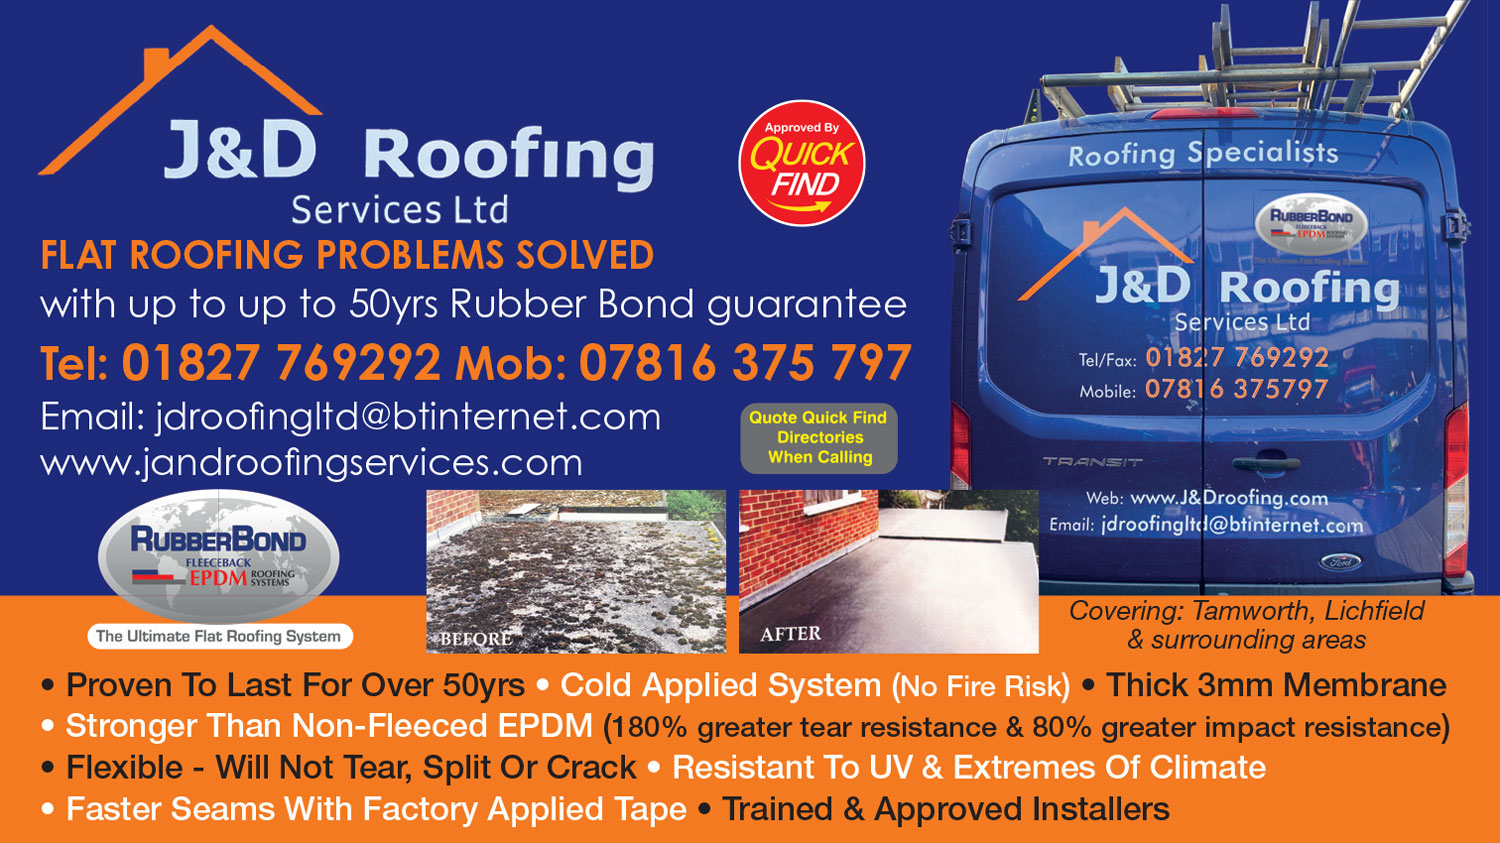 J&D Roofing Services Ltd